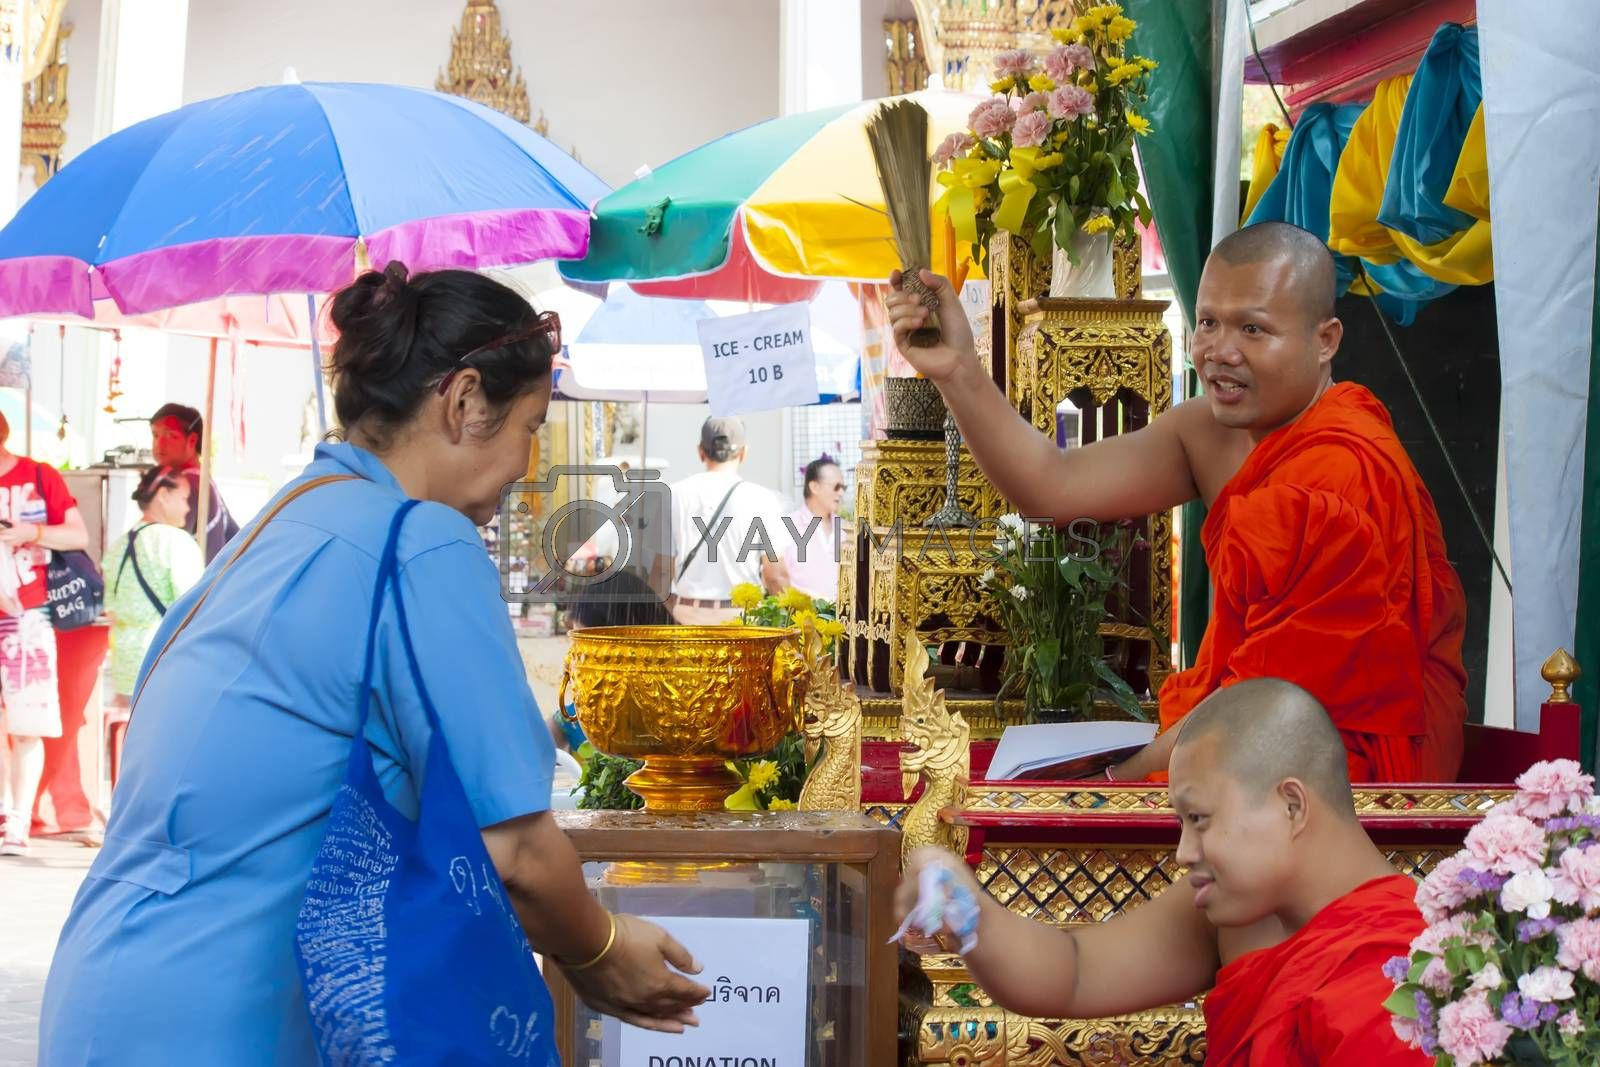 Unidentified monk pouring a holy water to people for a good luck in Songkran festival tradition of thailand. Photo: Amnarj2006/ yaymicro.com